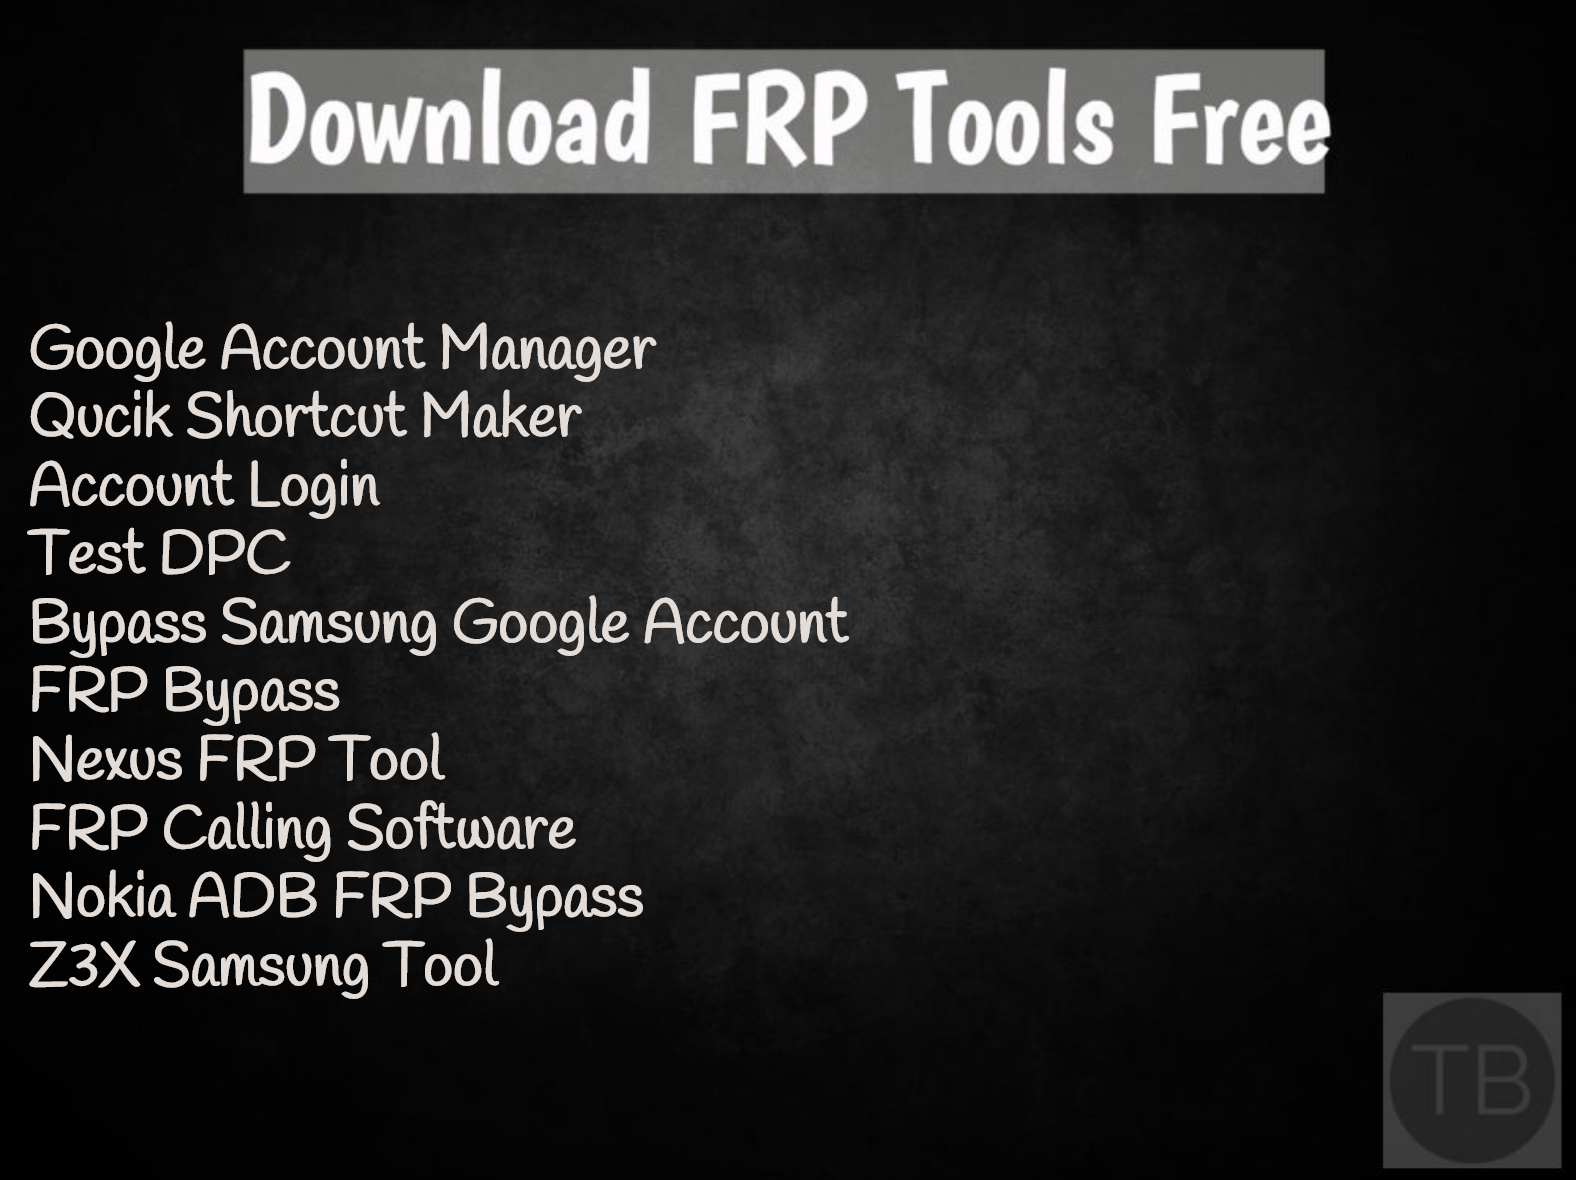 Download FRP Tools Free